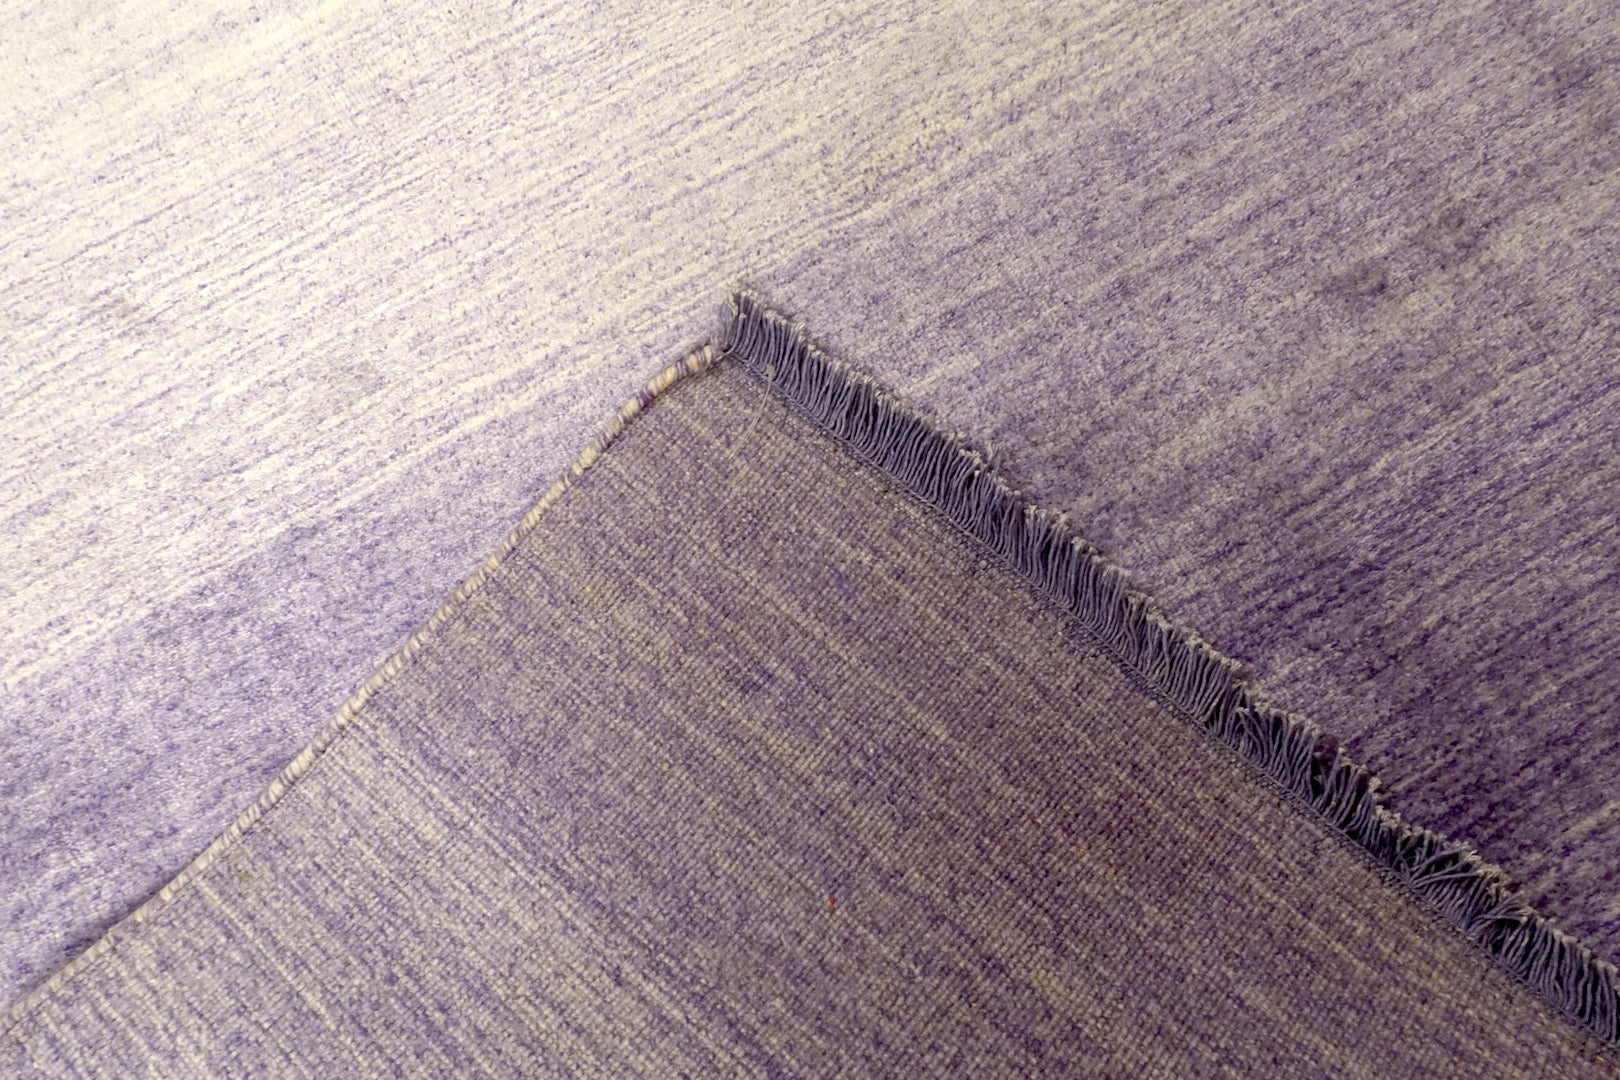 A 4.5 feet by 8 feet rug that is purple and fades inwards with white.